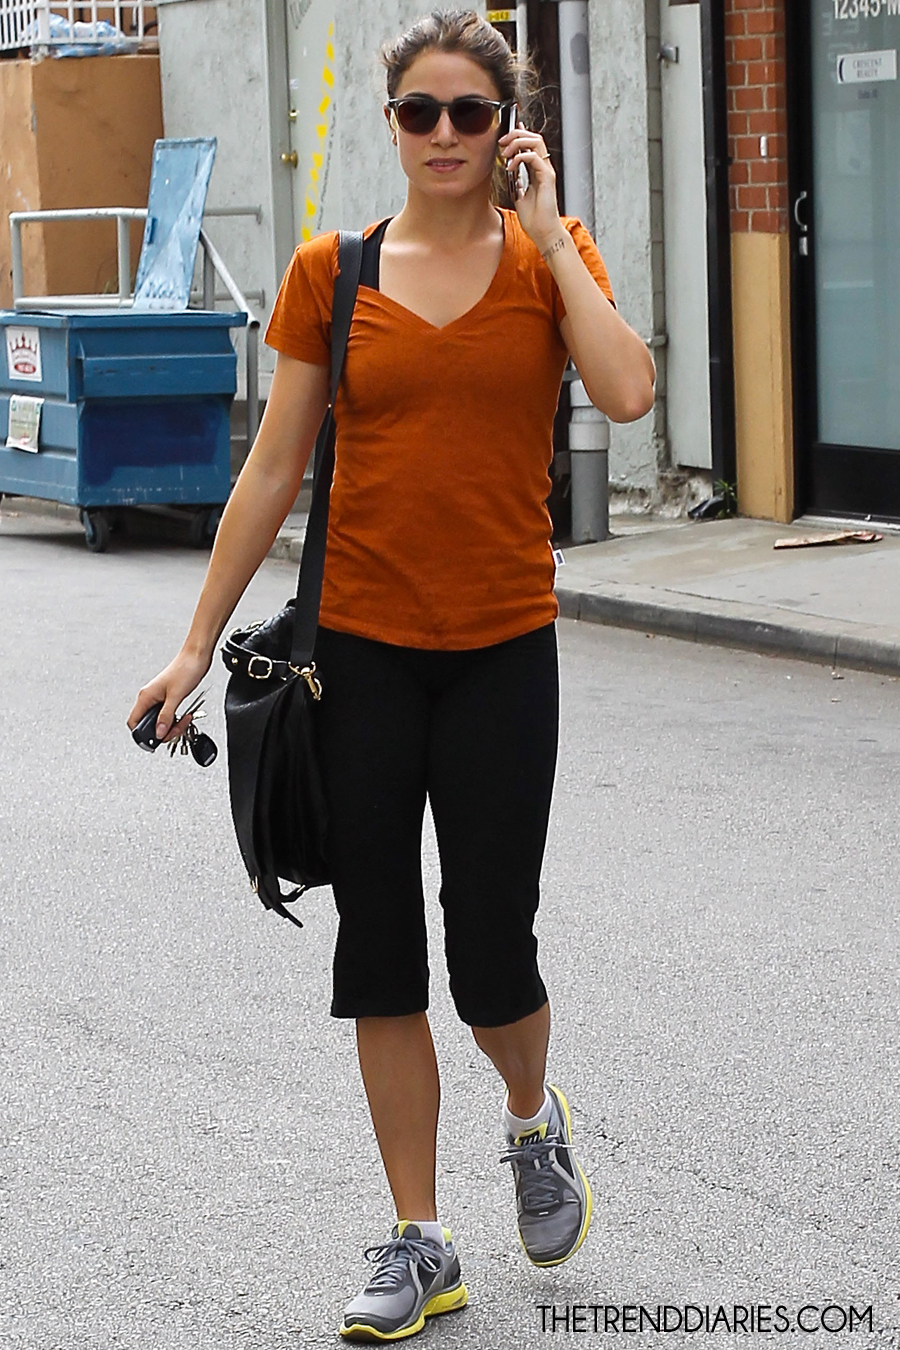 Nikki Reed Out In Studio City Los Angeles California May 3 2012 The Trend Diaries